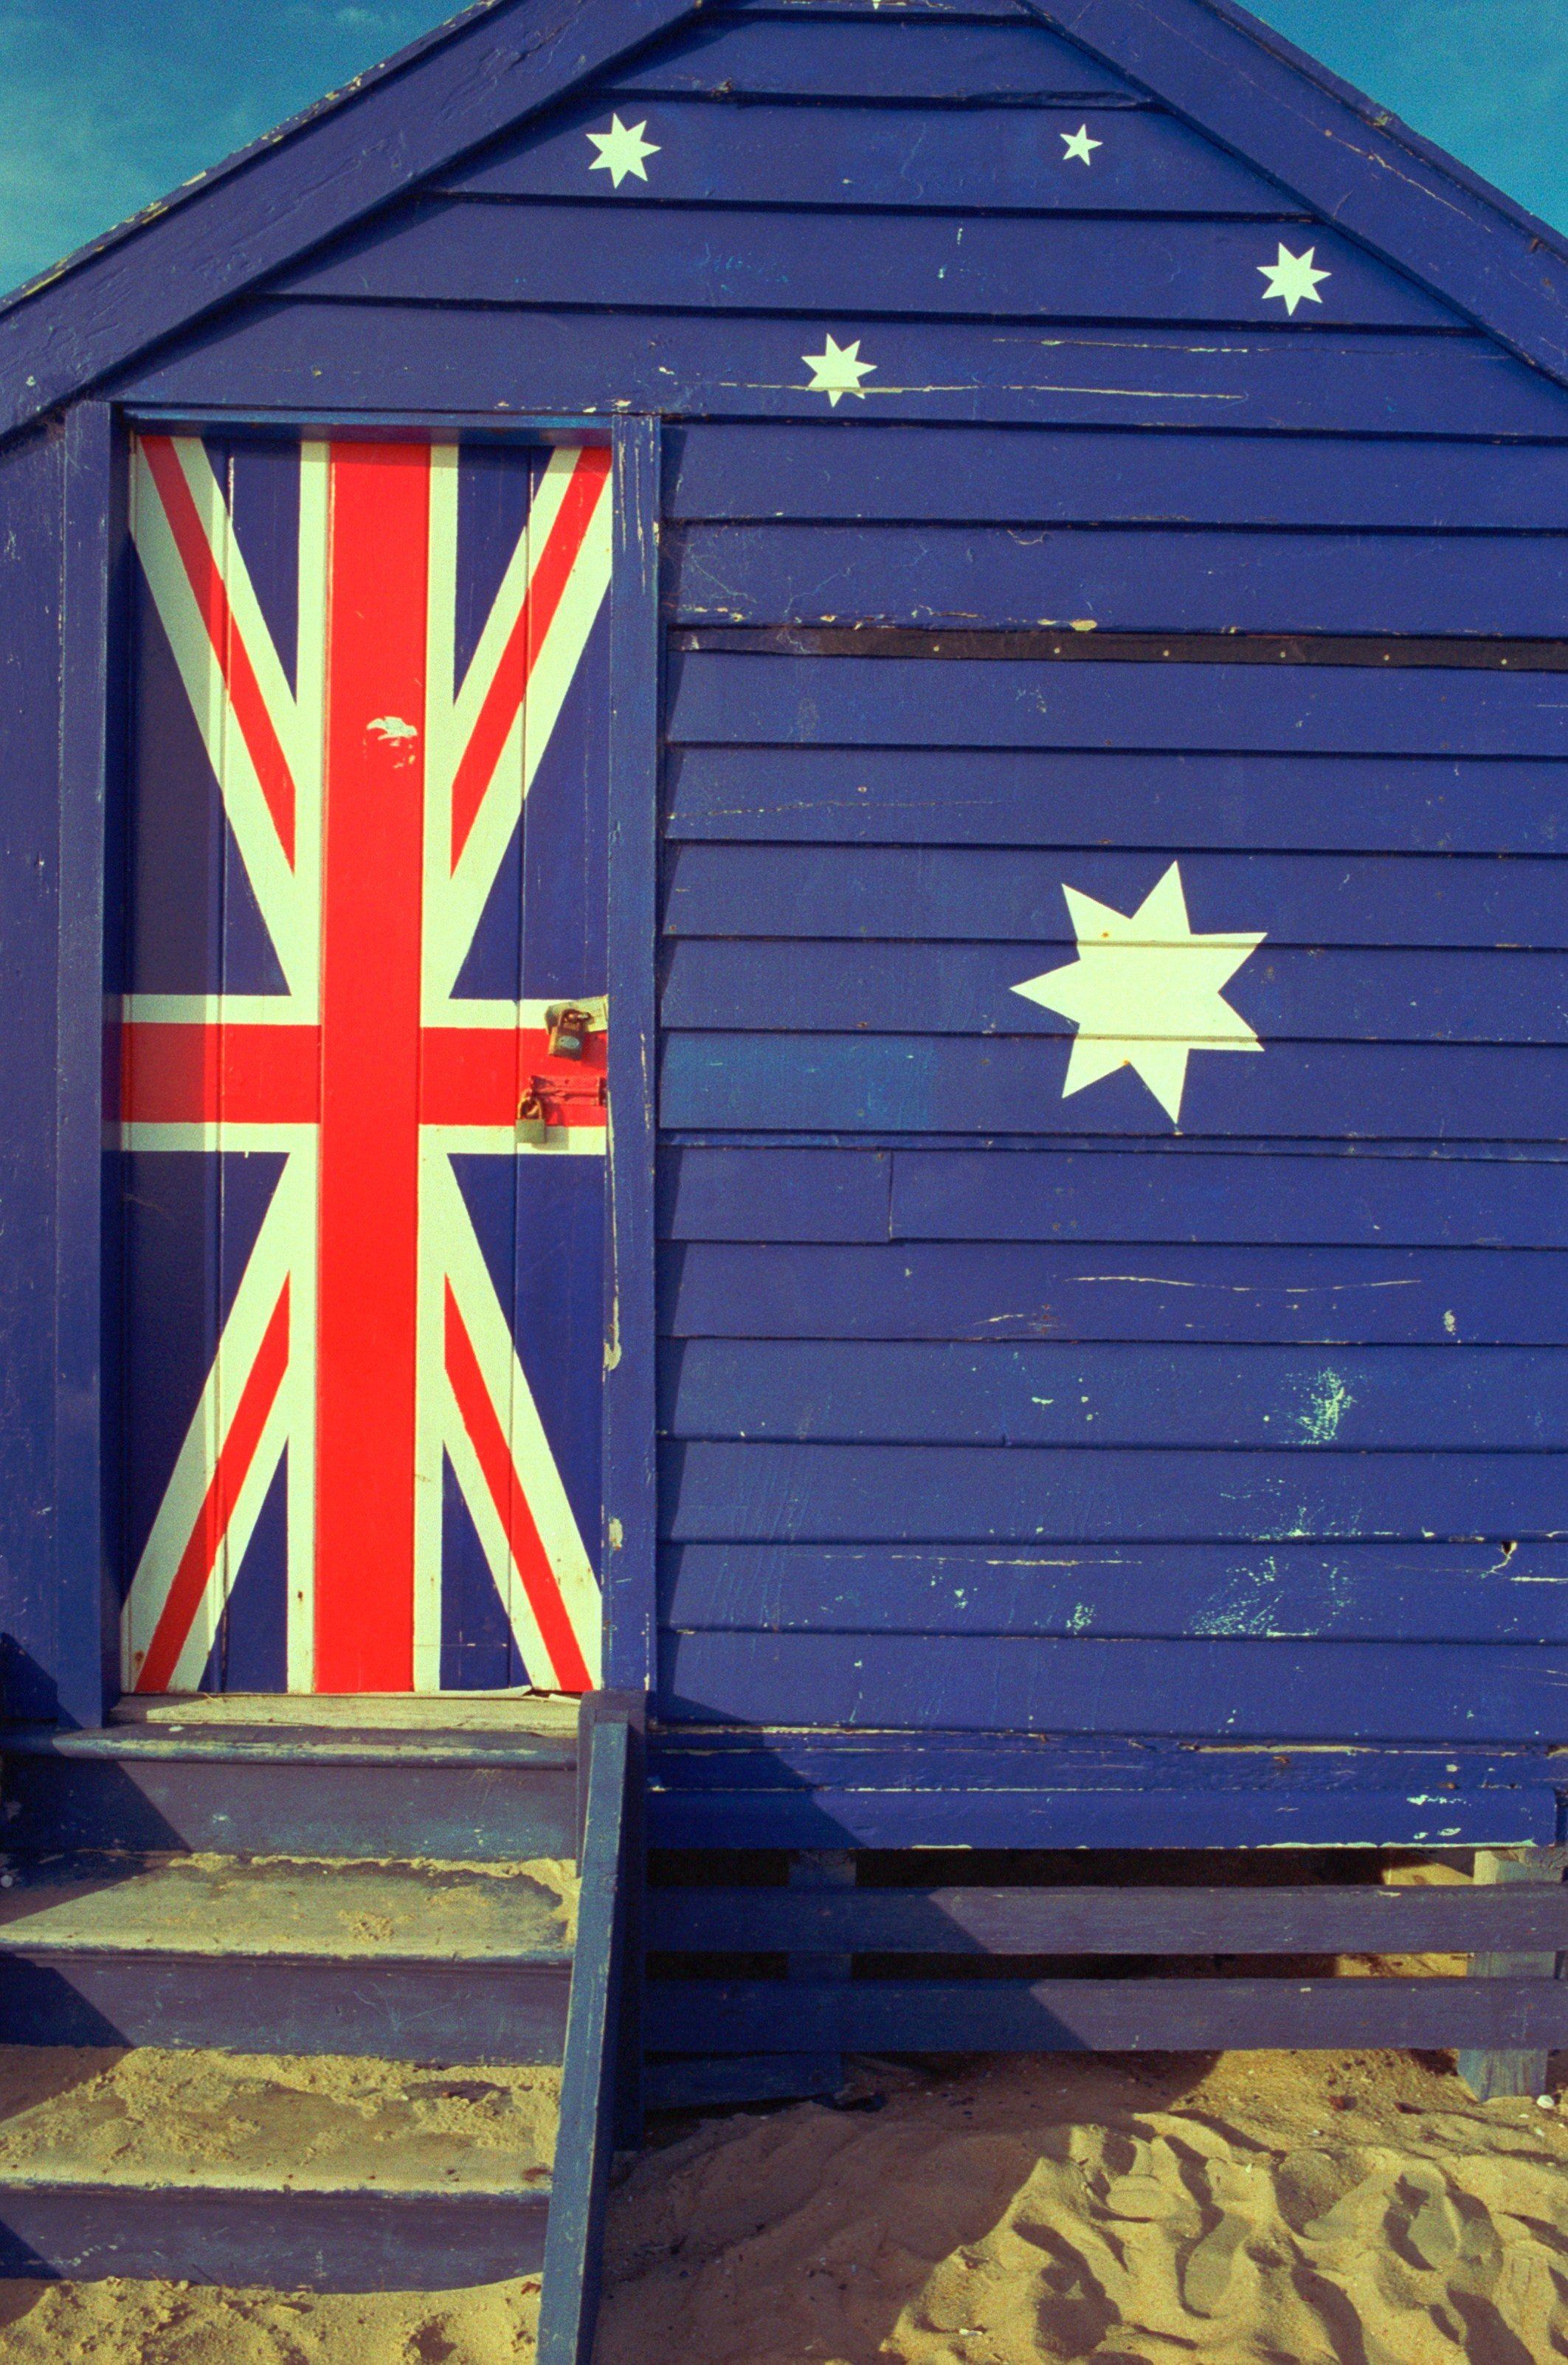 11 fun facts about Australia